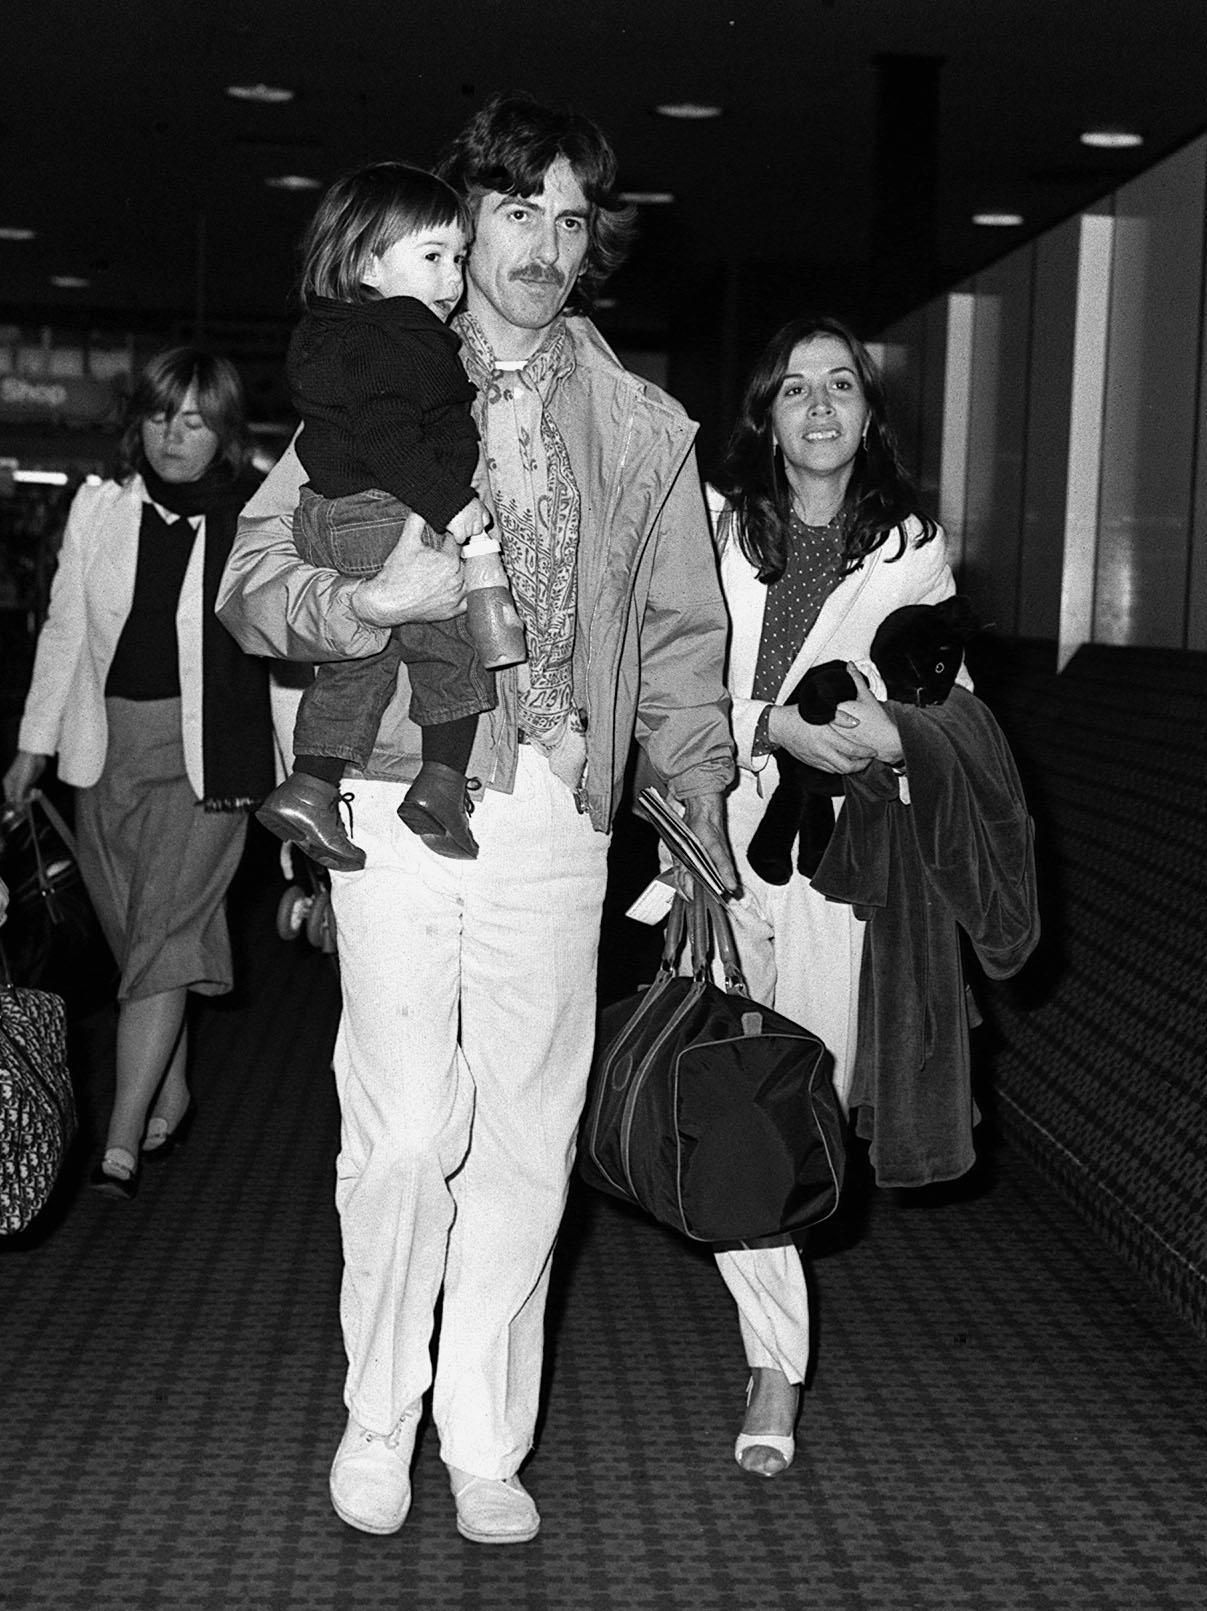 George Harrison And His Wife Olivia Arias With Their Son Dhani